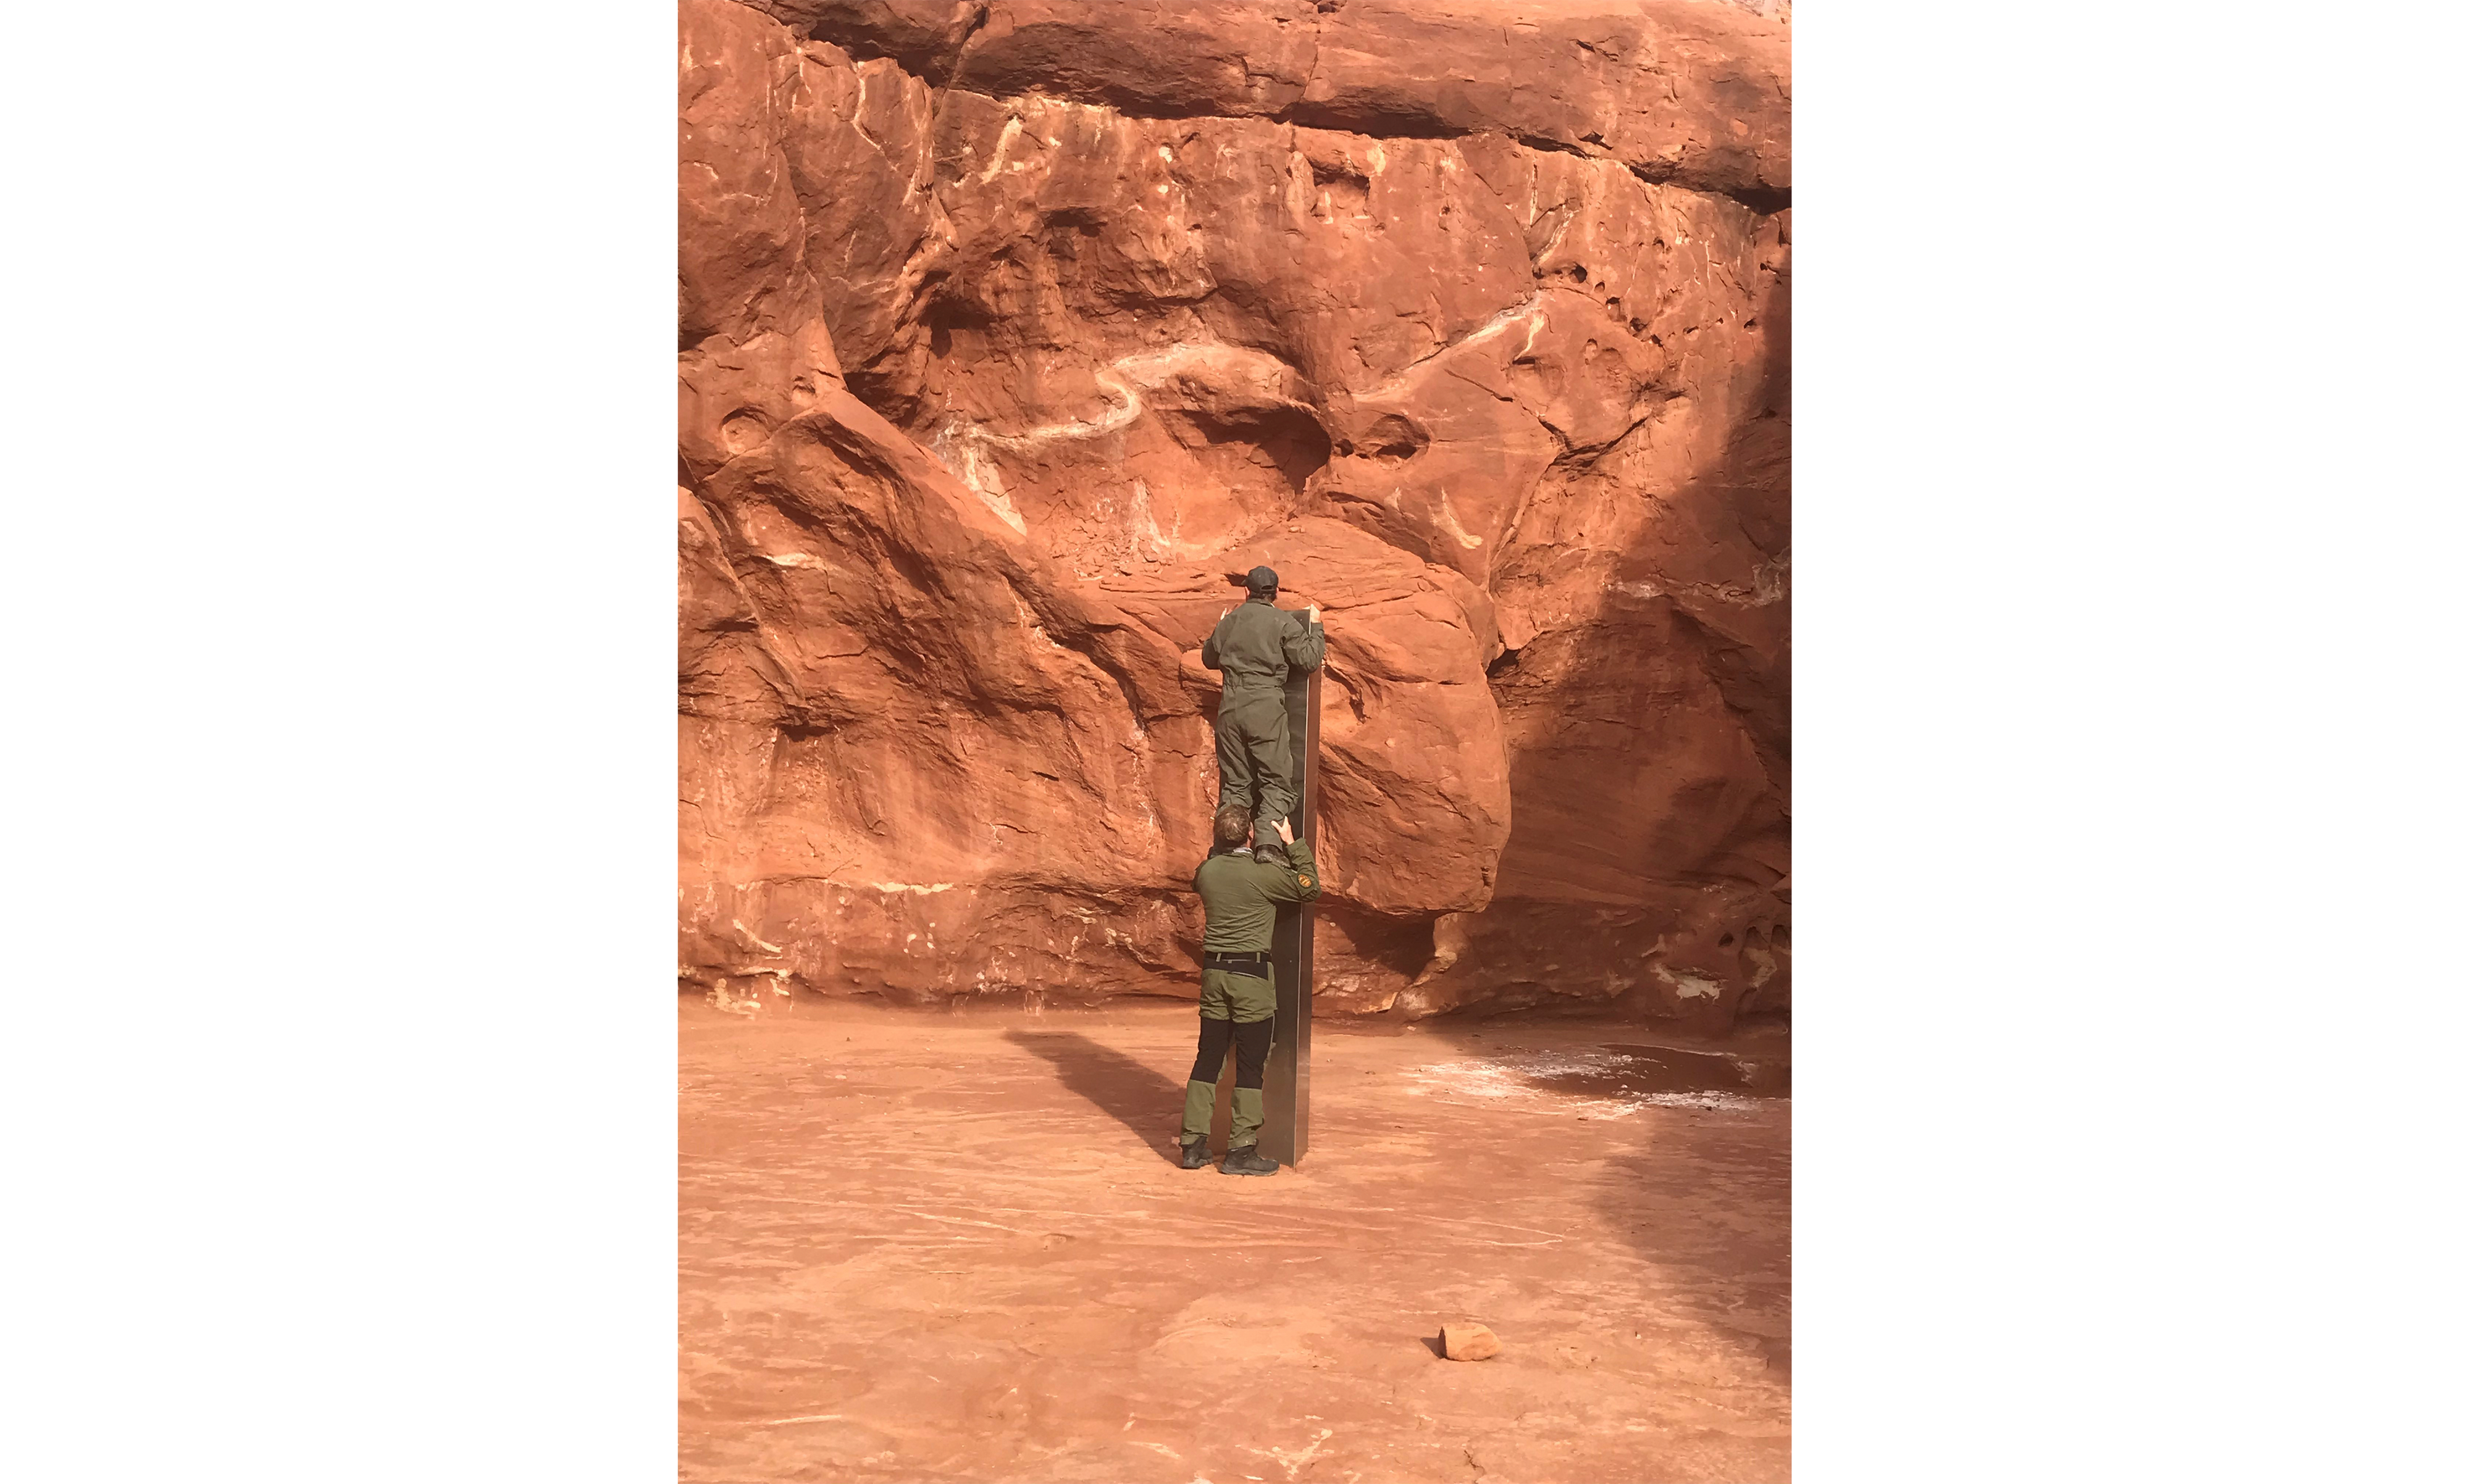 Two men examine the utah monolith, one standing on the other's shoulders.